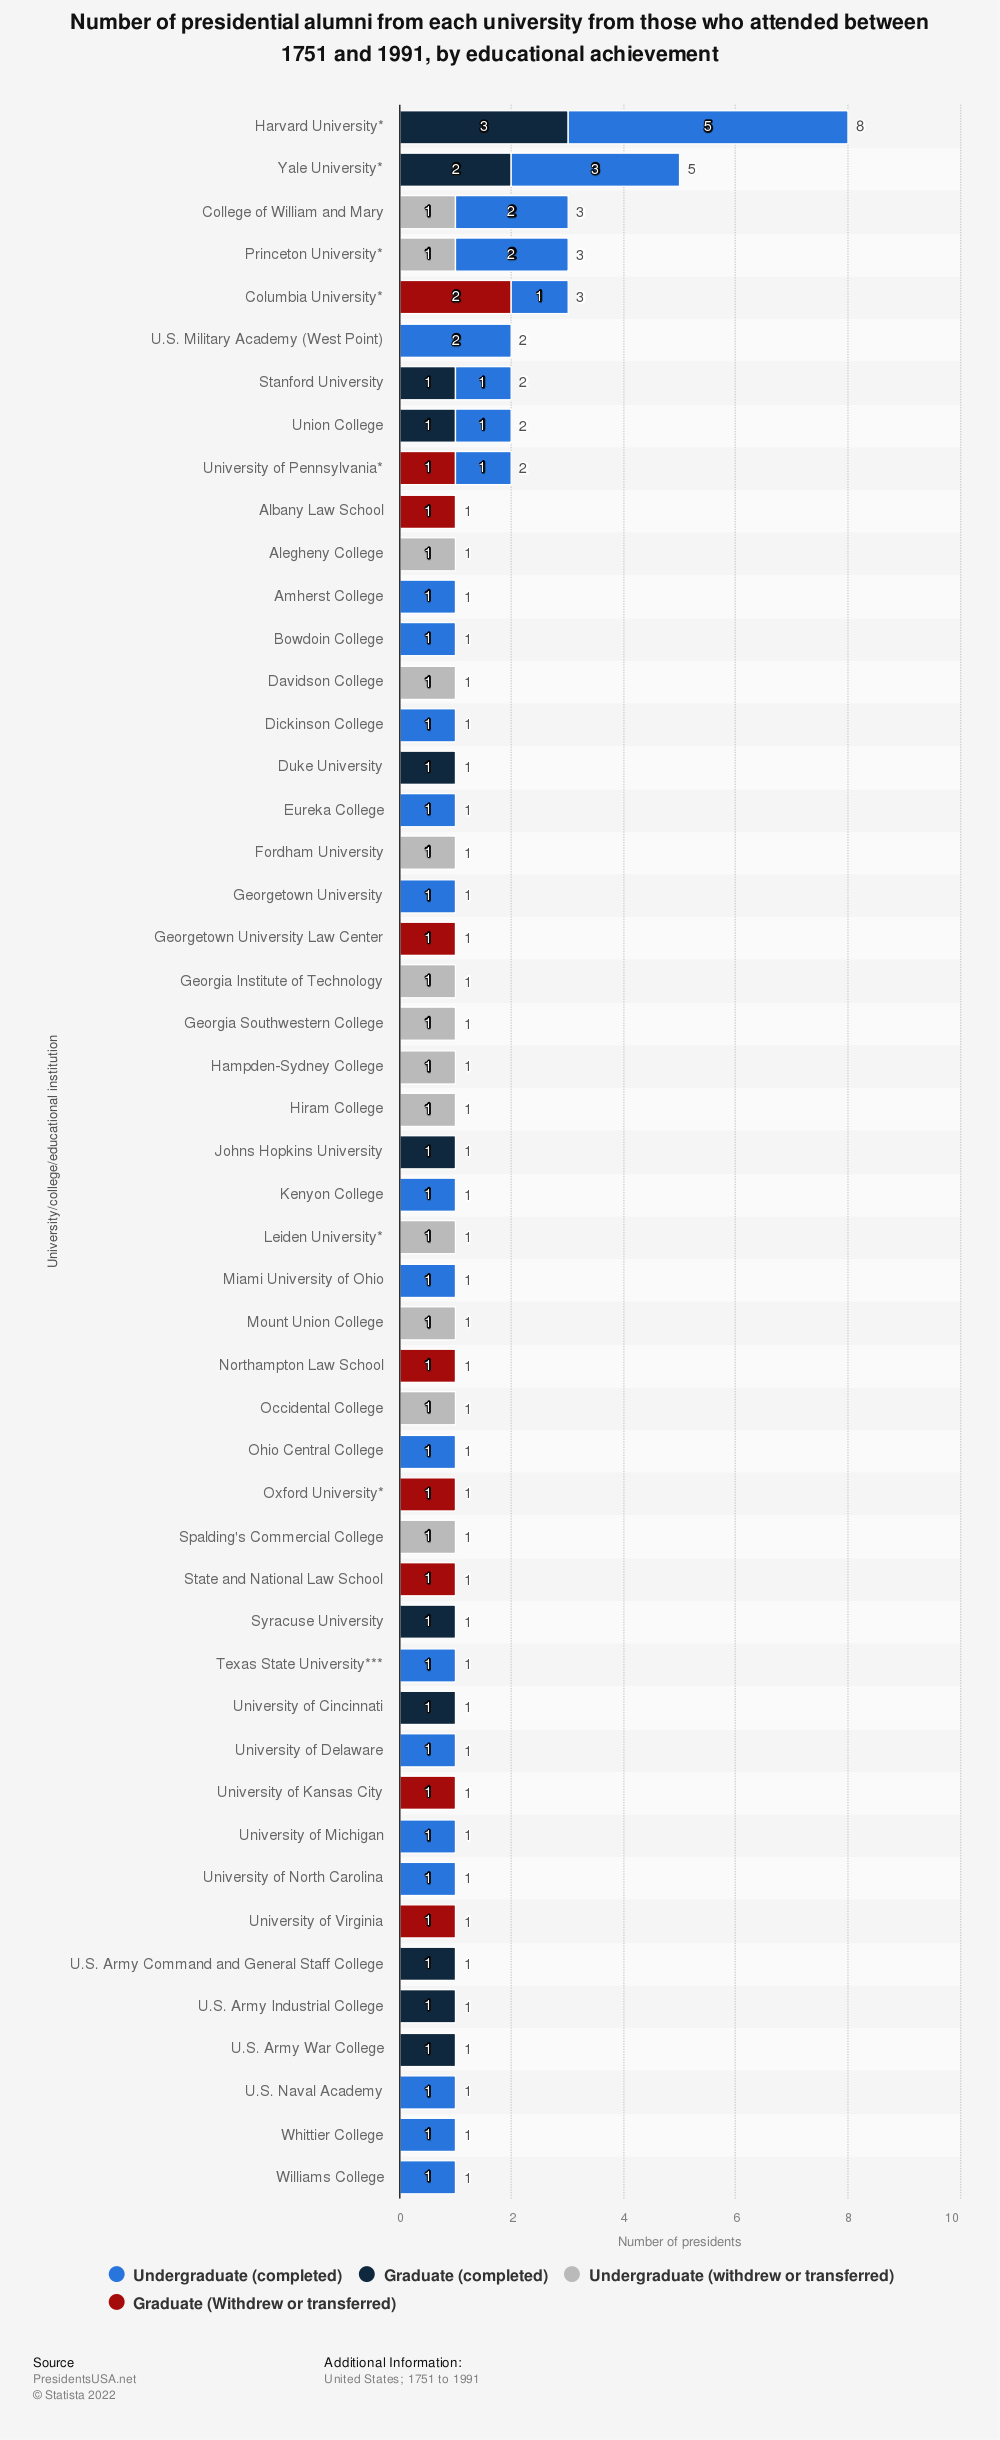 Statistic: Number of presidential alumni from each university from those who attended between 1751 and 1991, by educational achievement | Statista